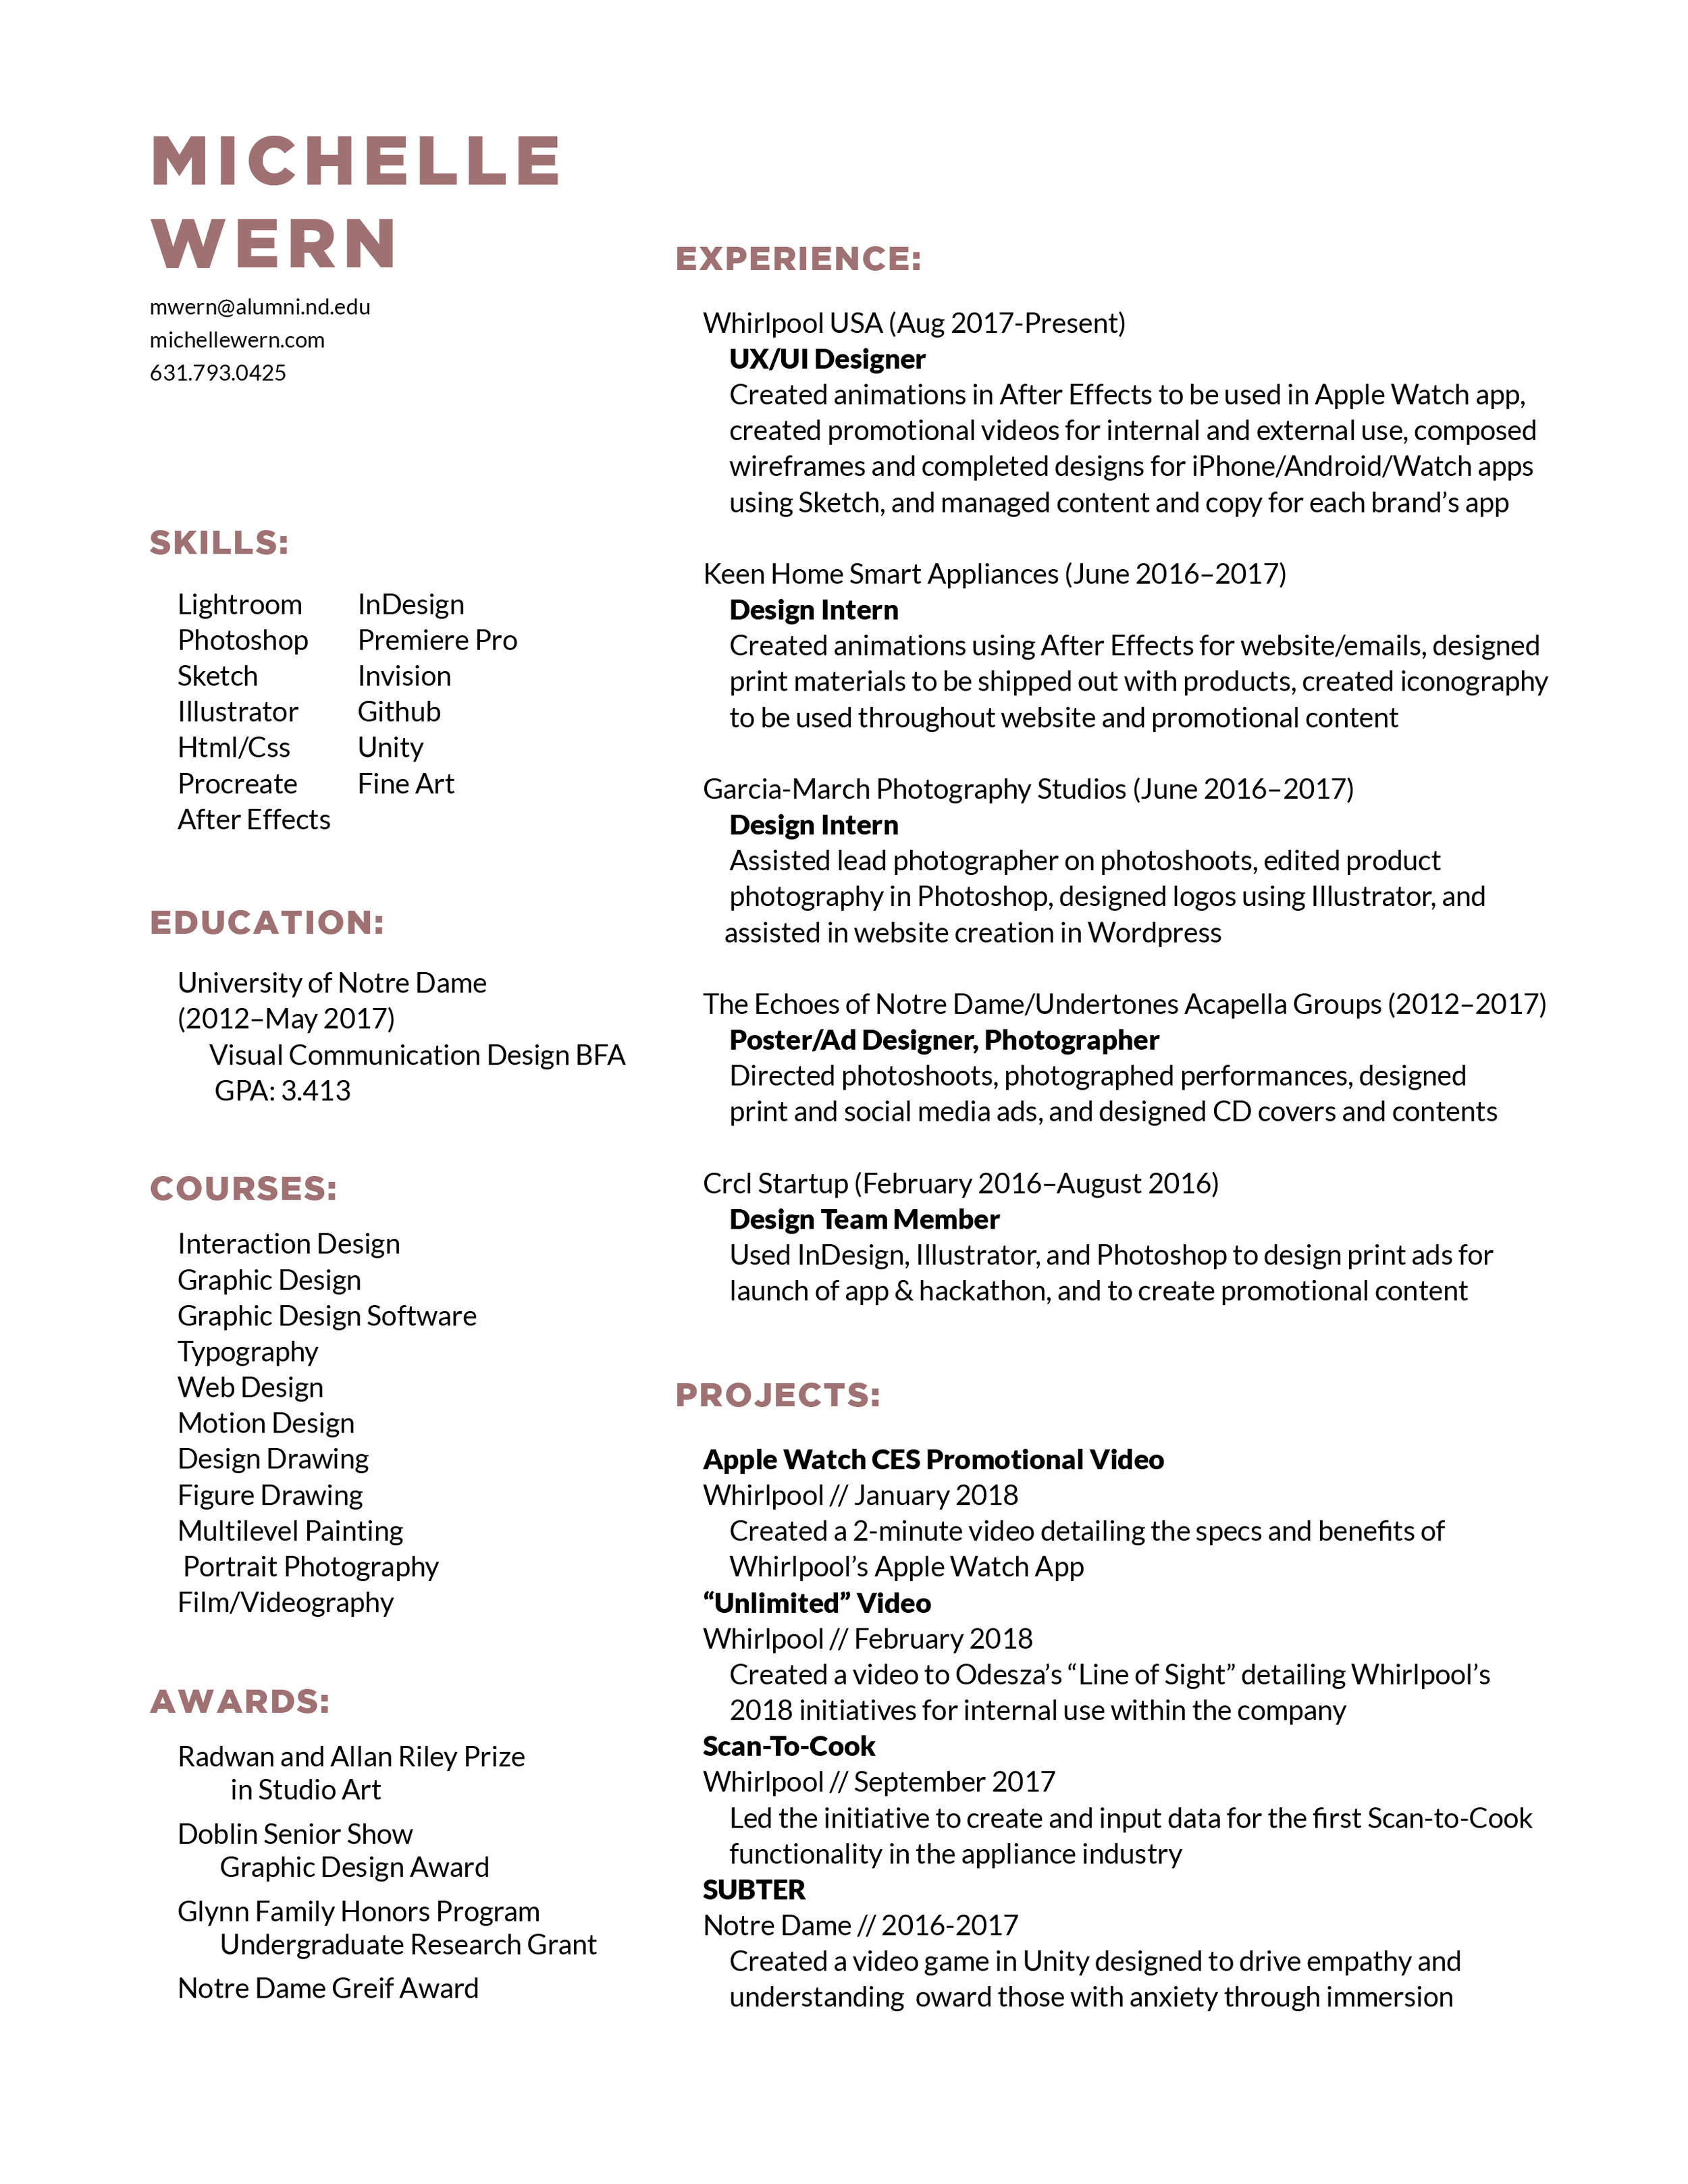 Michelle Wern Resume Feb 2018.jpg